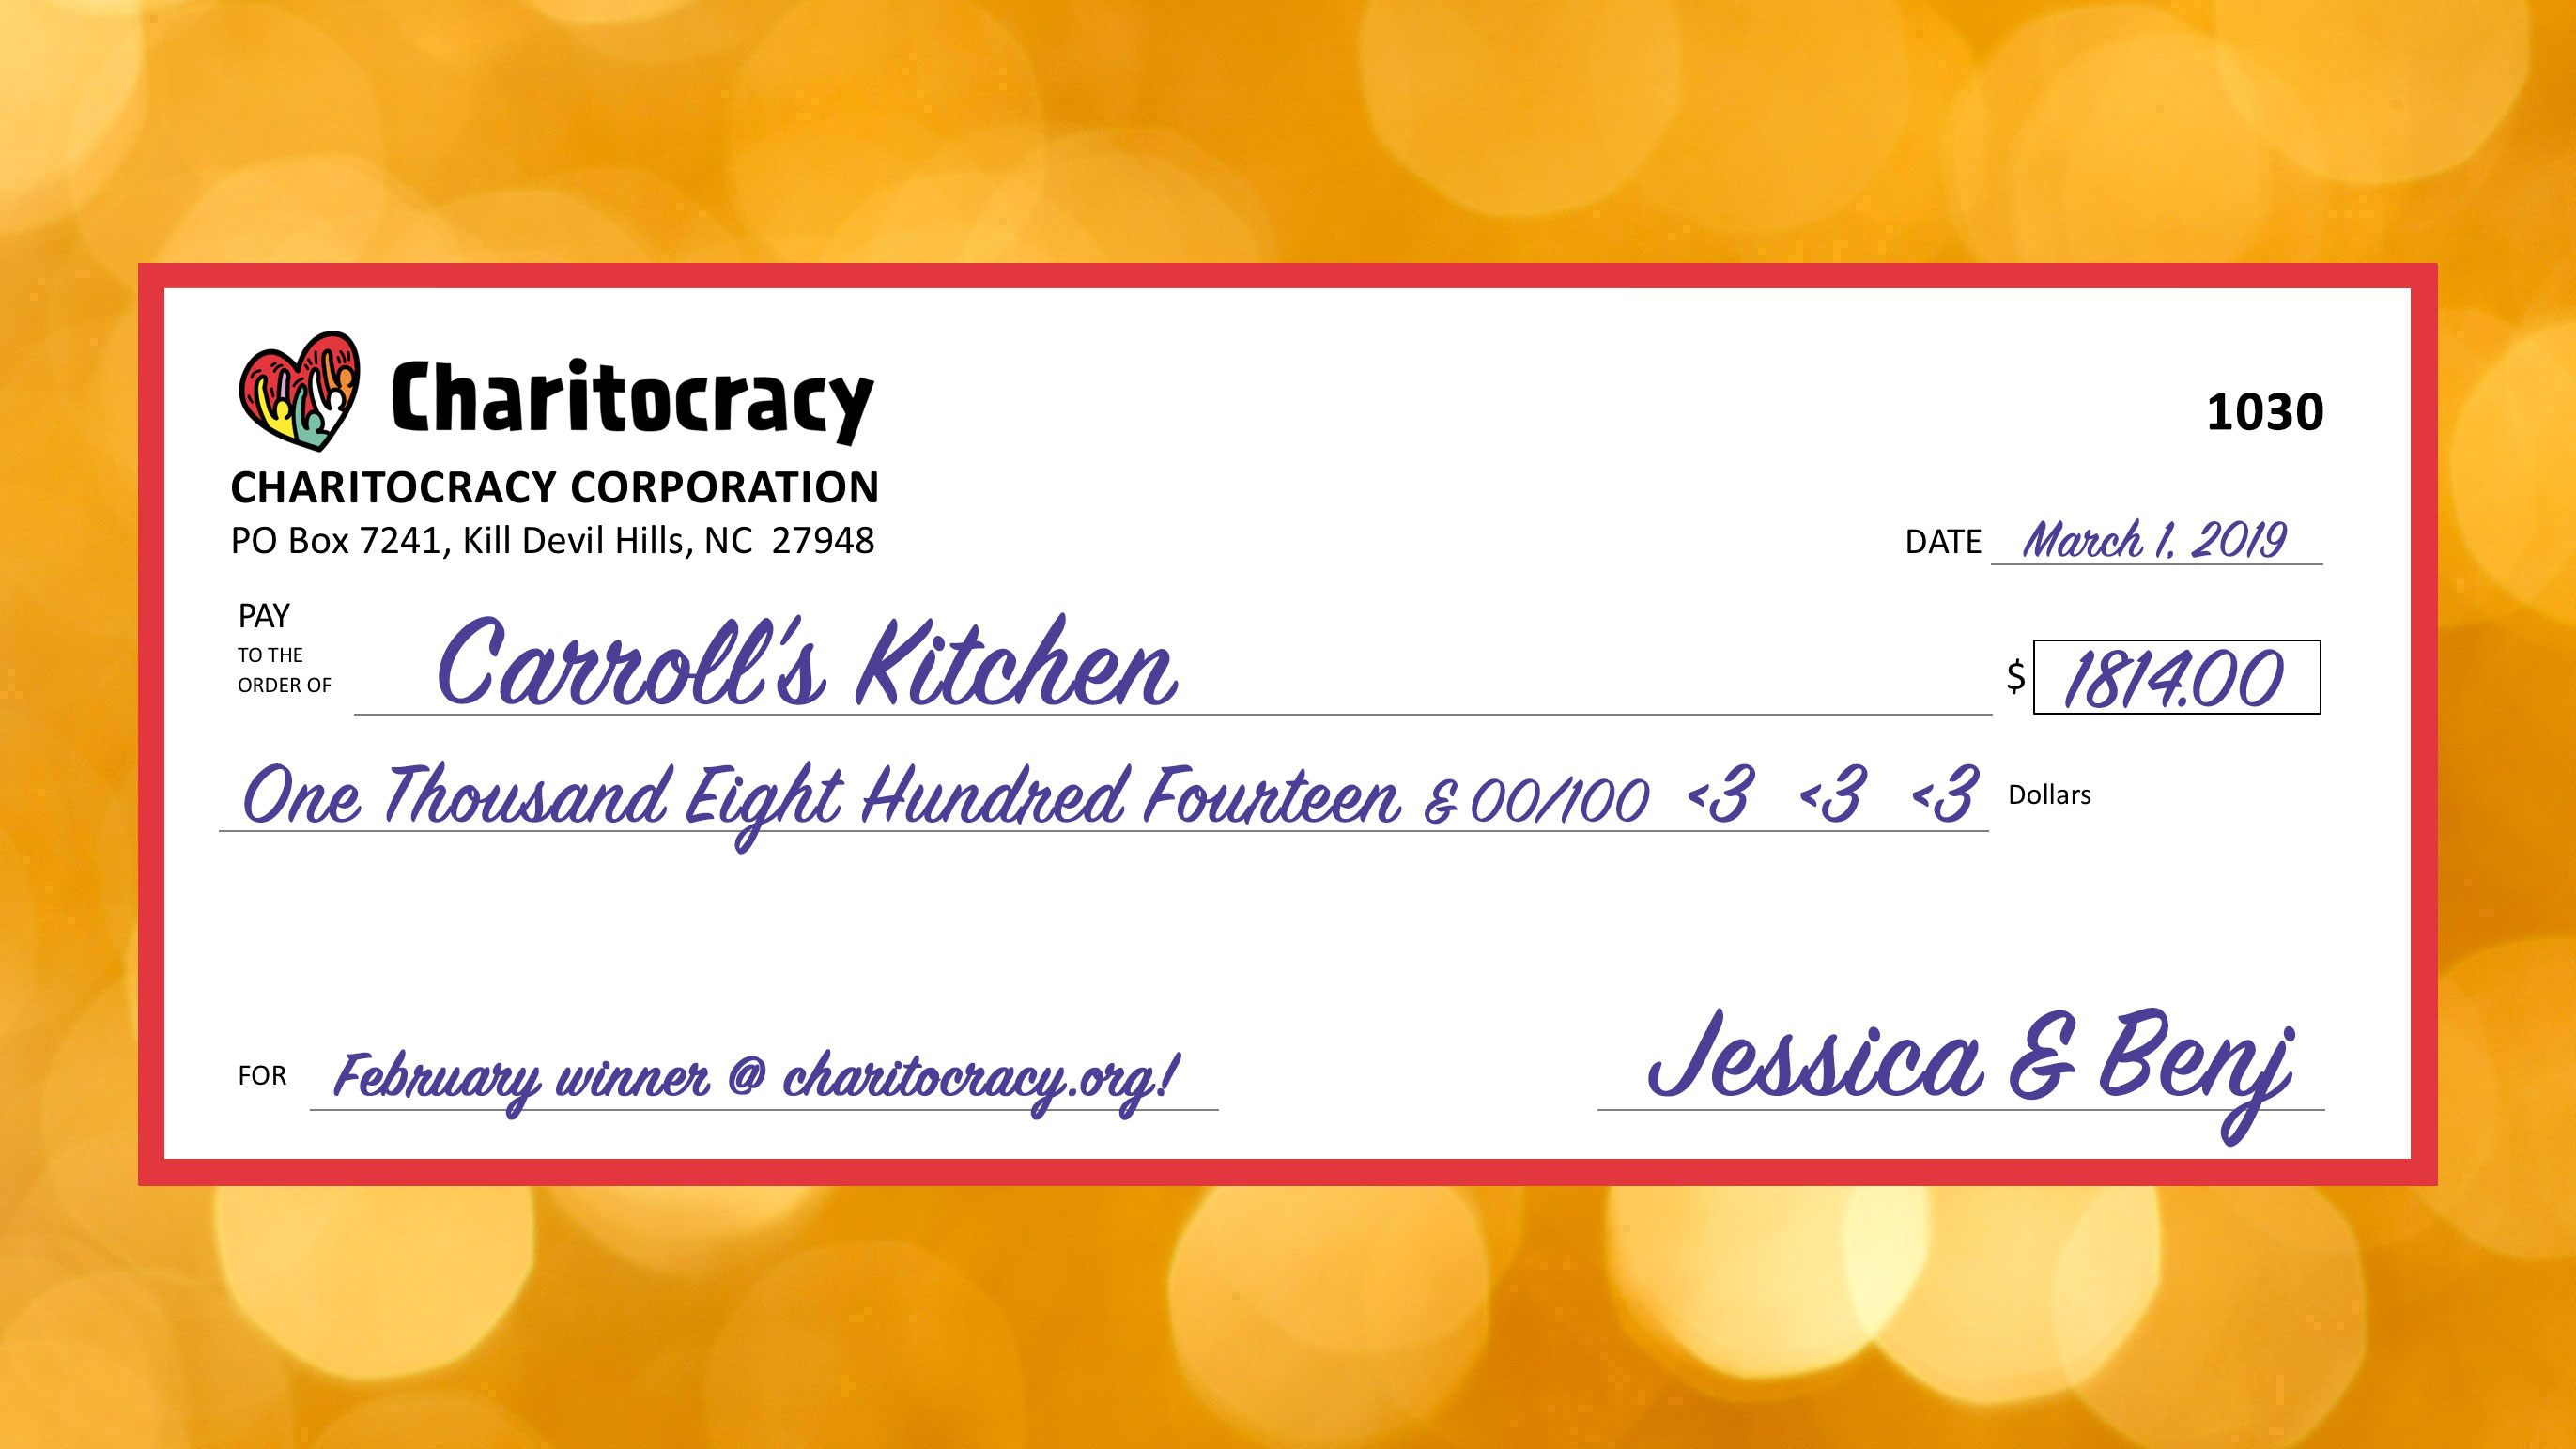 Charitocracy's 30th check: to Carroll's Kitchen for $1814